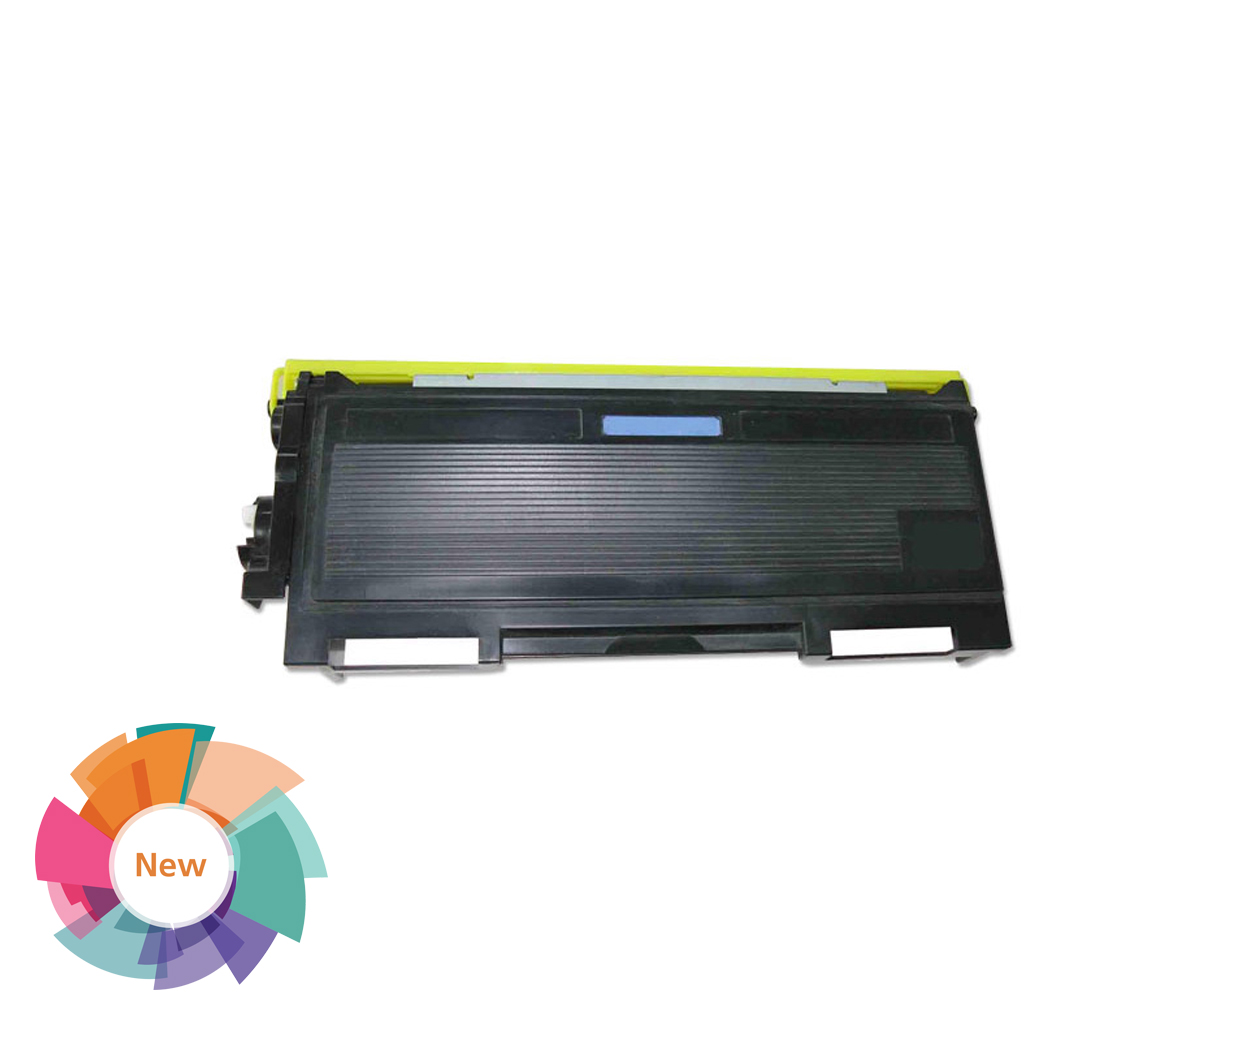 Stationery Clearance - Compatible TN2000 Brother Toner Cartridge